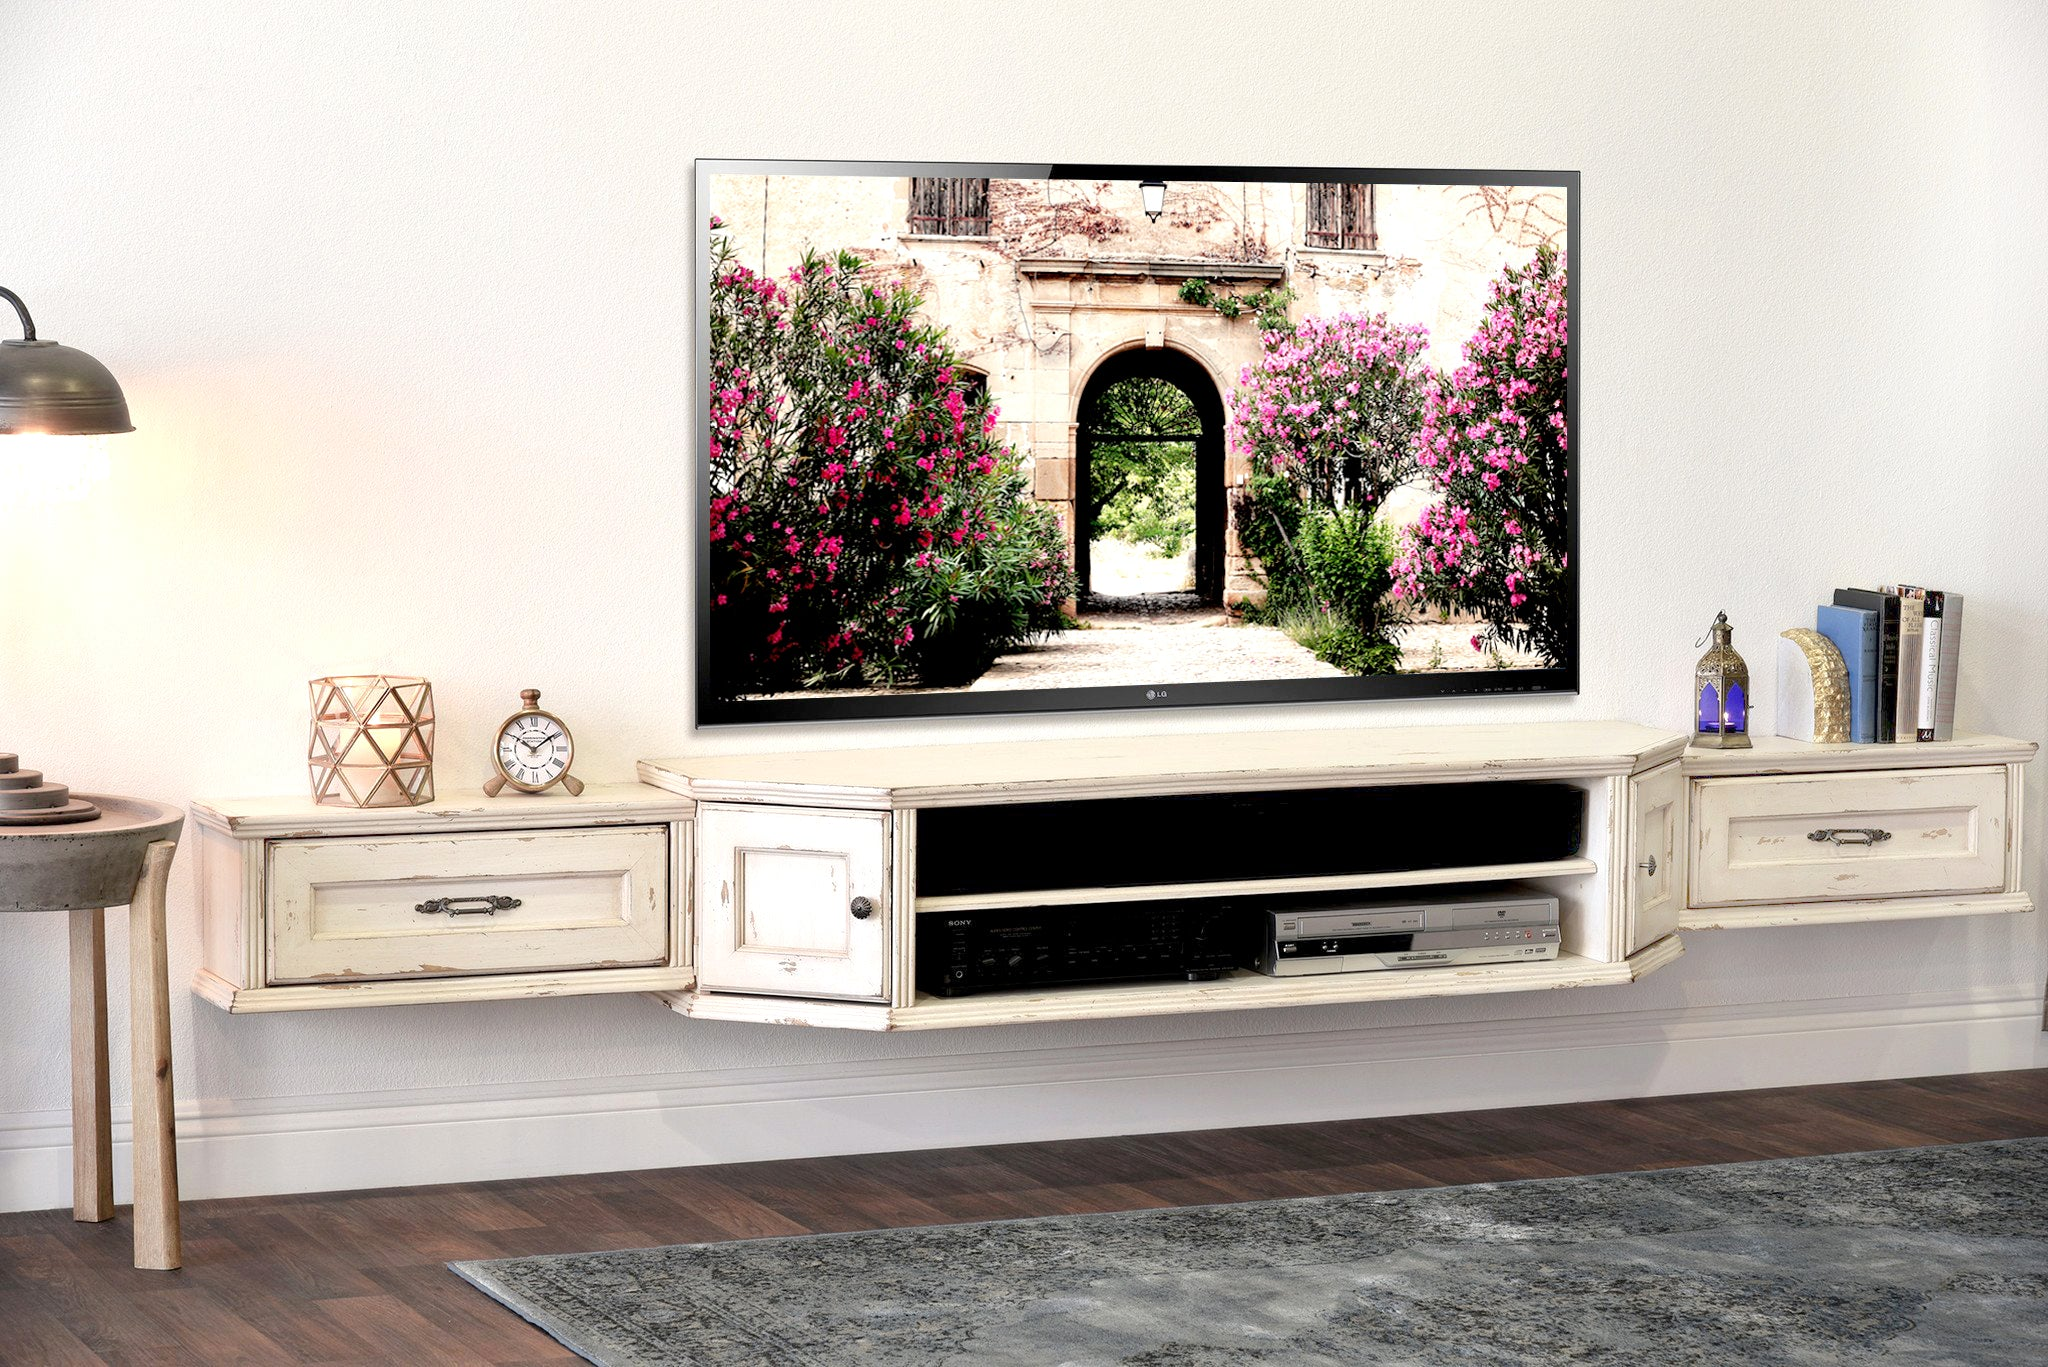 French Farmhouse Shabby Chic Antique White Floating TV Stand Wall